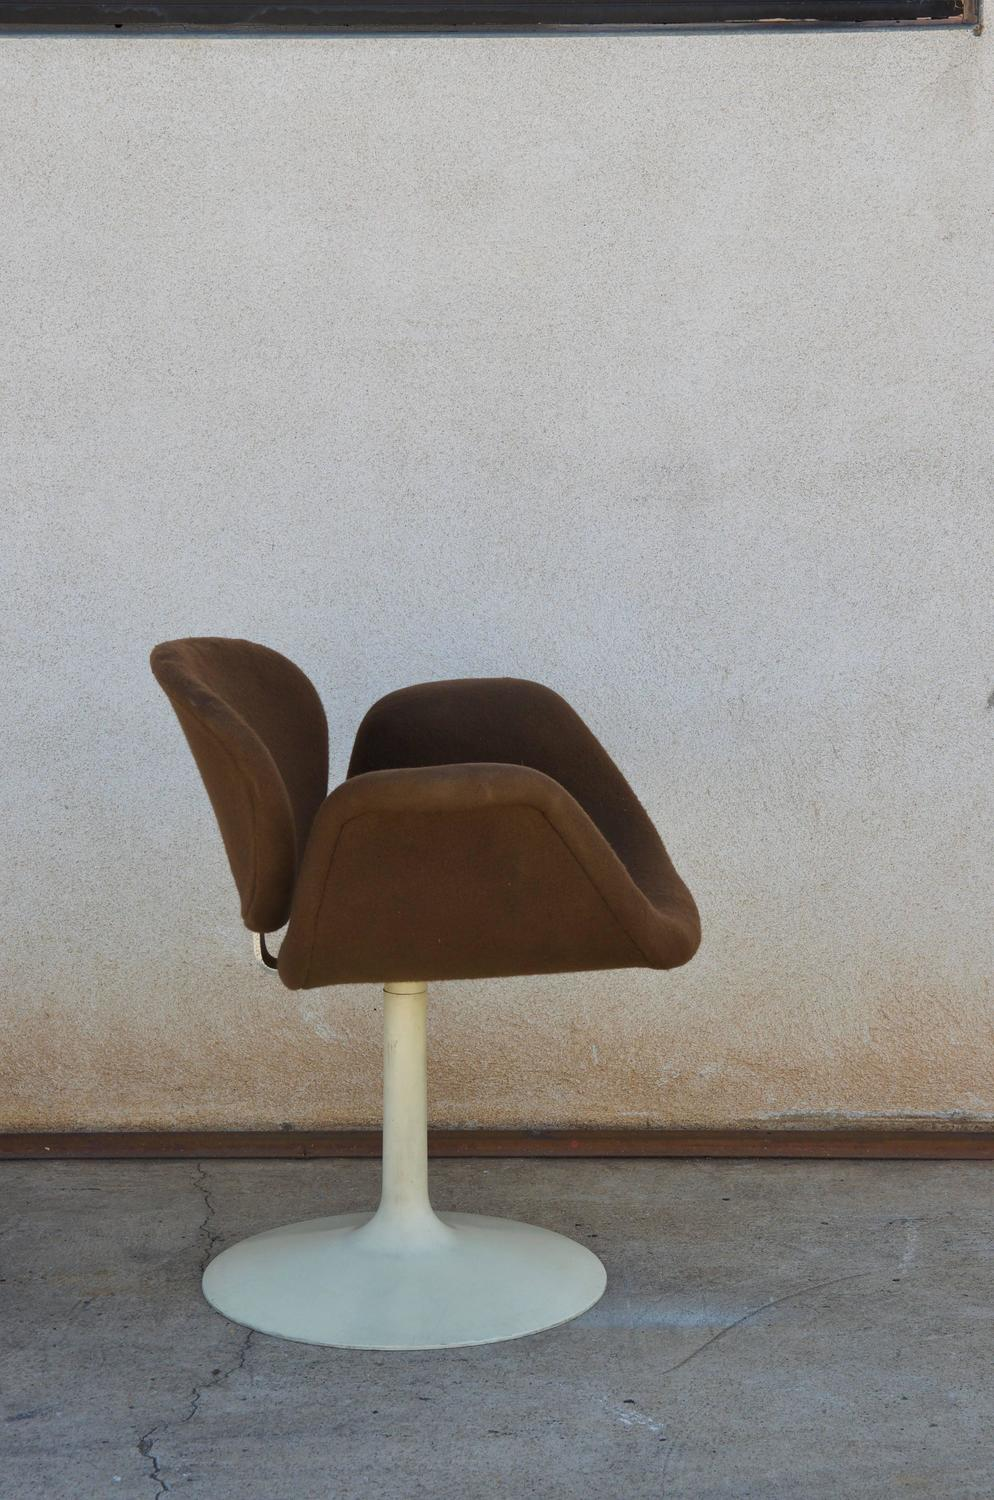 Pair of original little tulip chairs by pierre paulin for artifort for sale at 1stdibs - Tulip chairs for sale ...